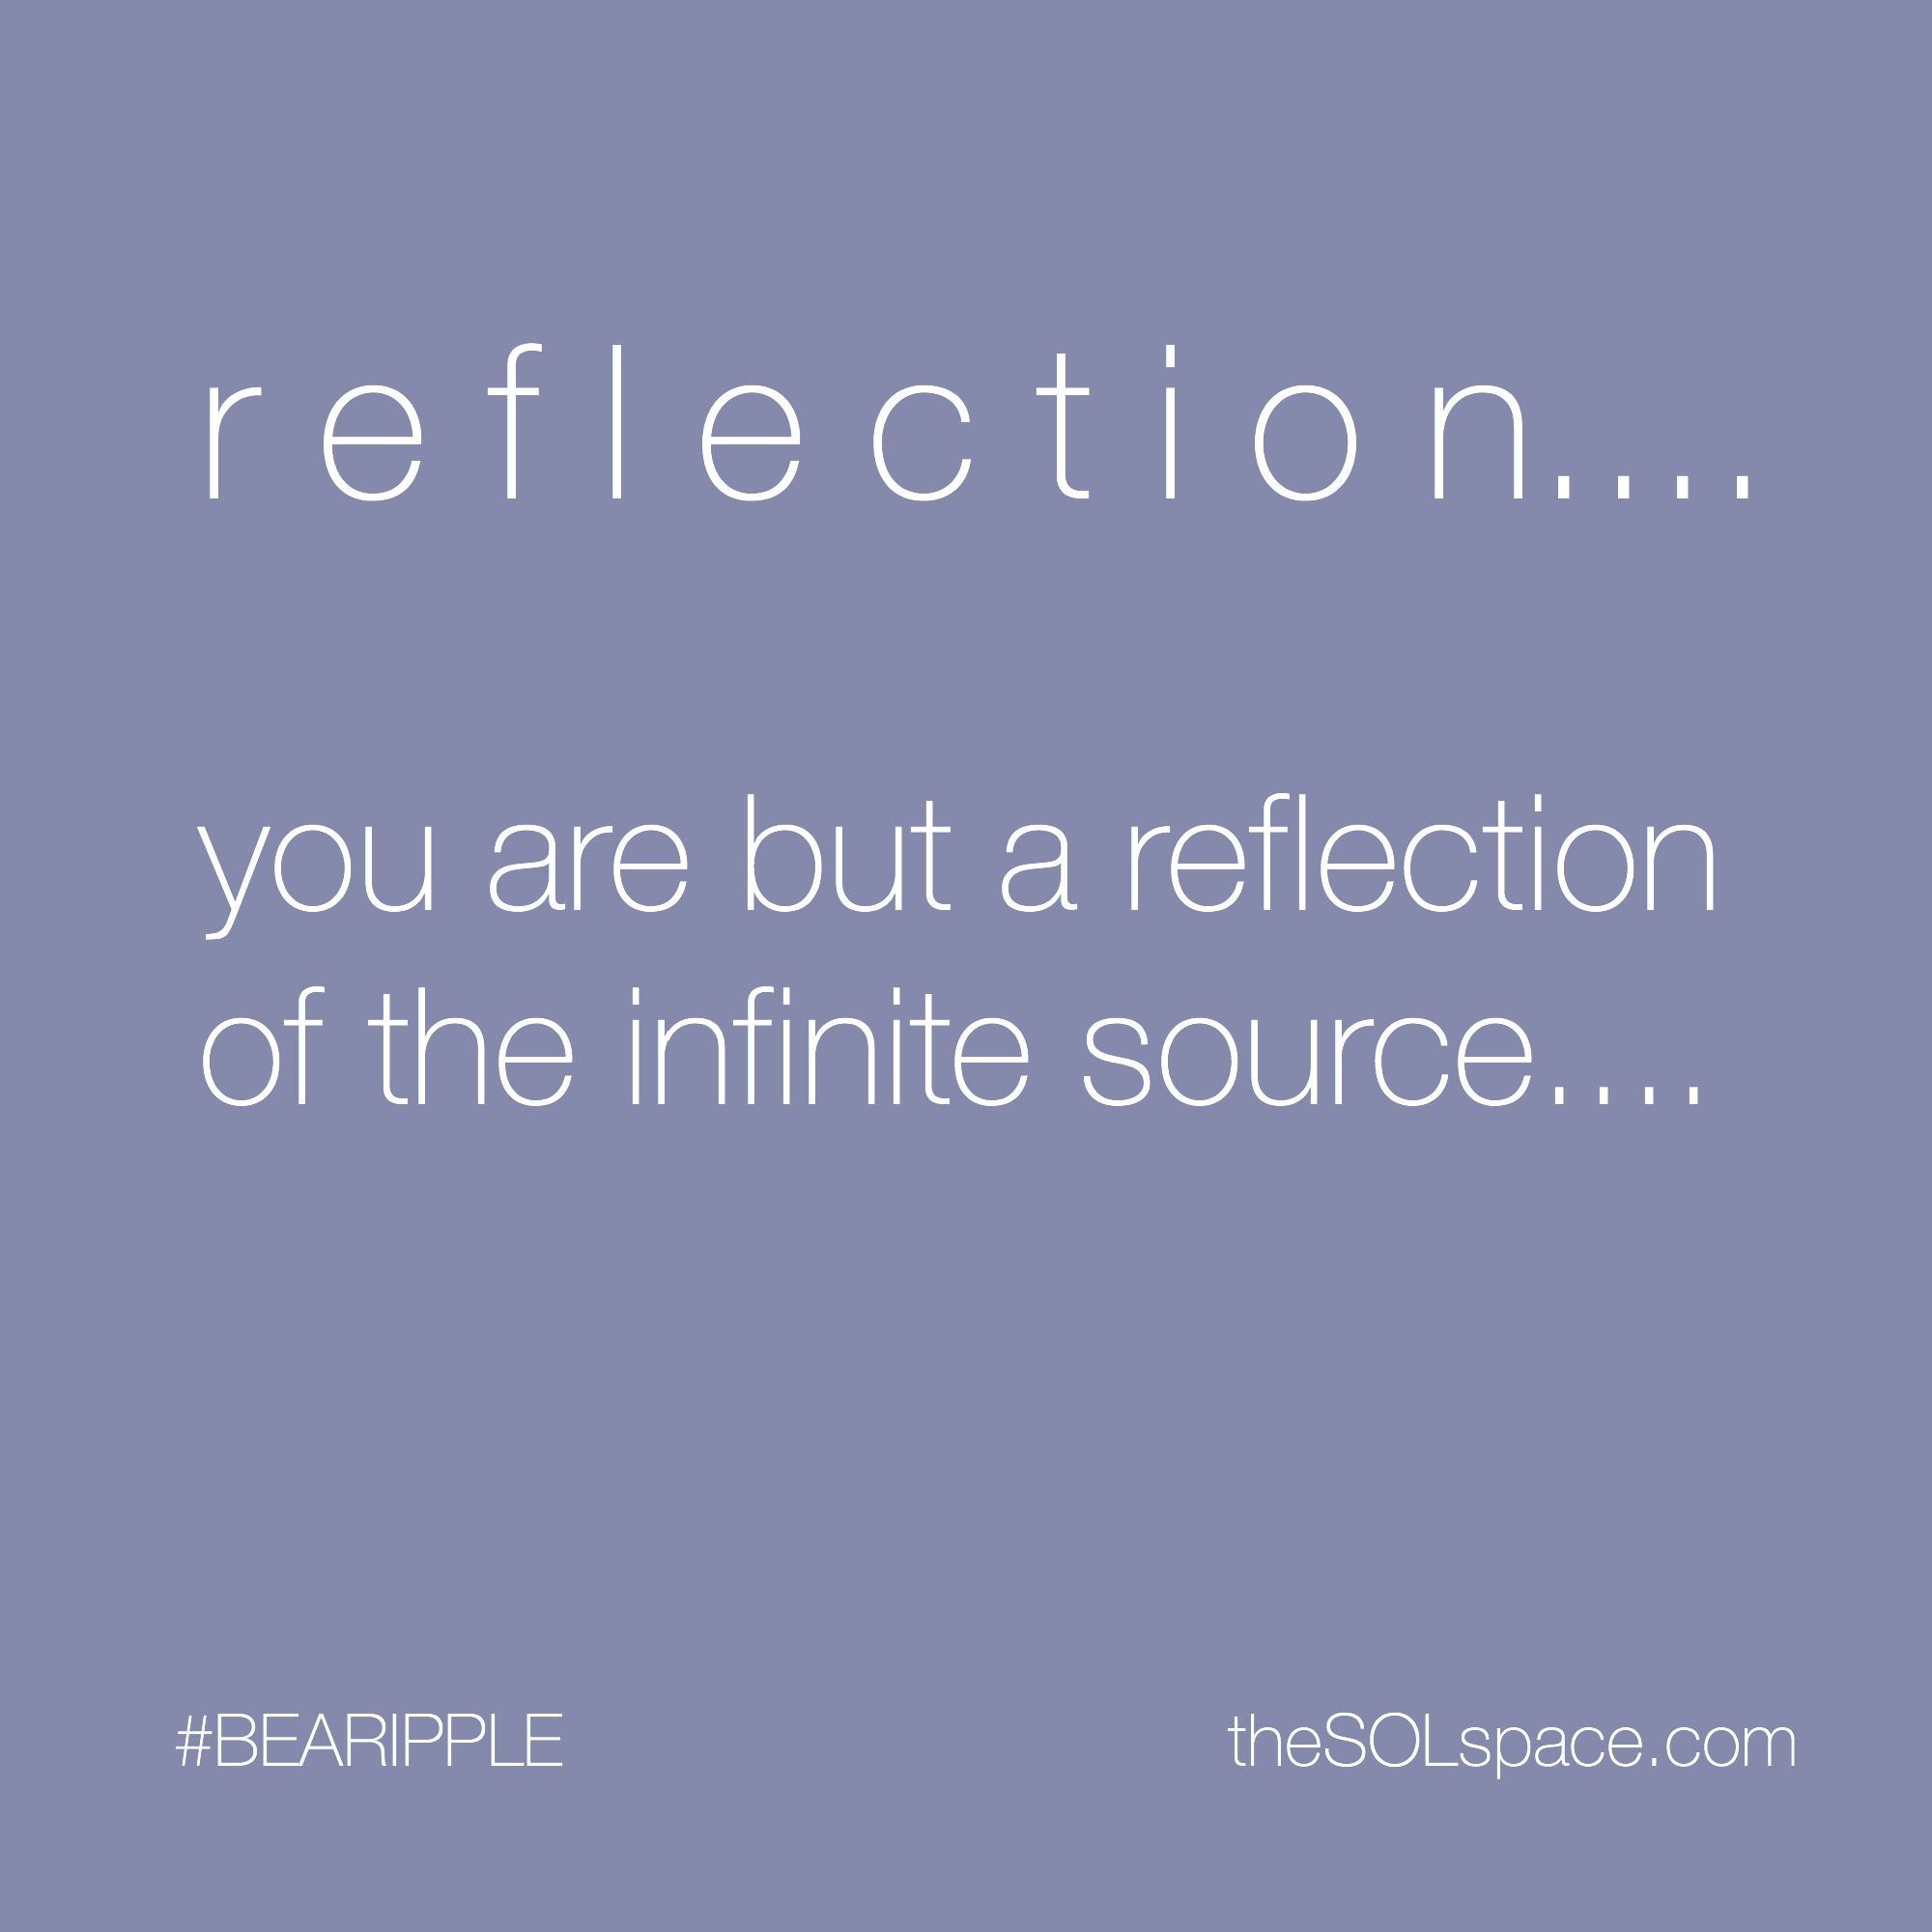 #BeARipple...Reflection...you are but a reflection of the infinite source @theSOLspace